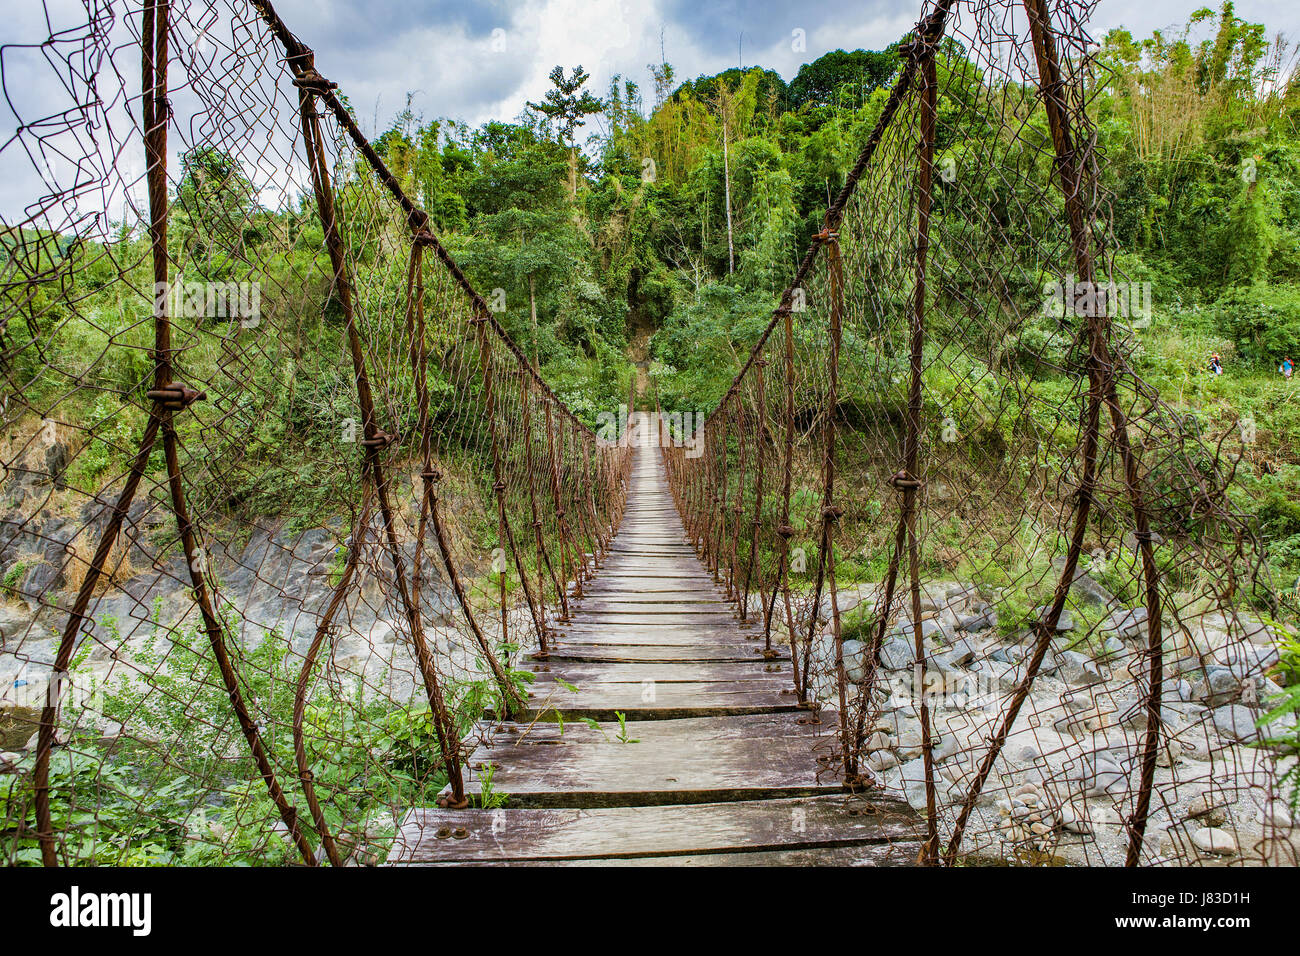 A suspension bridge made of cable, wire fencing and wood hangs over ...